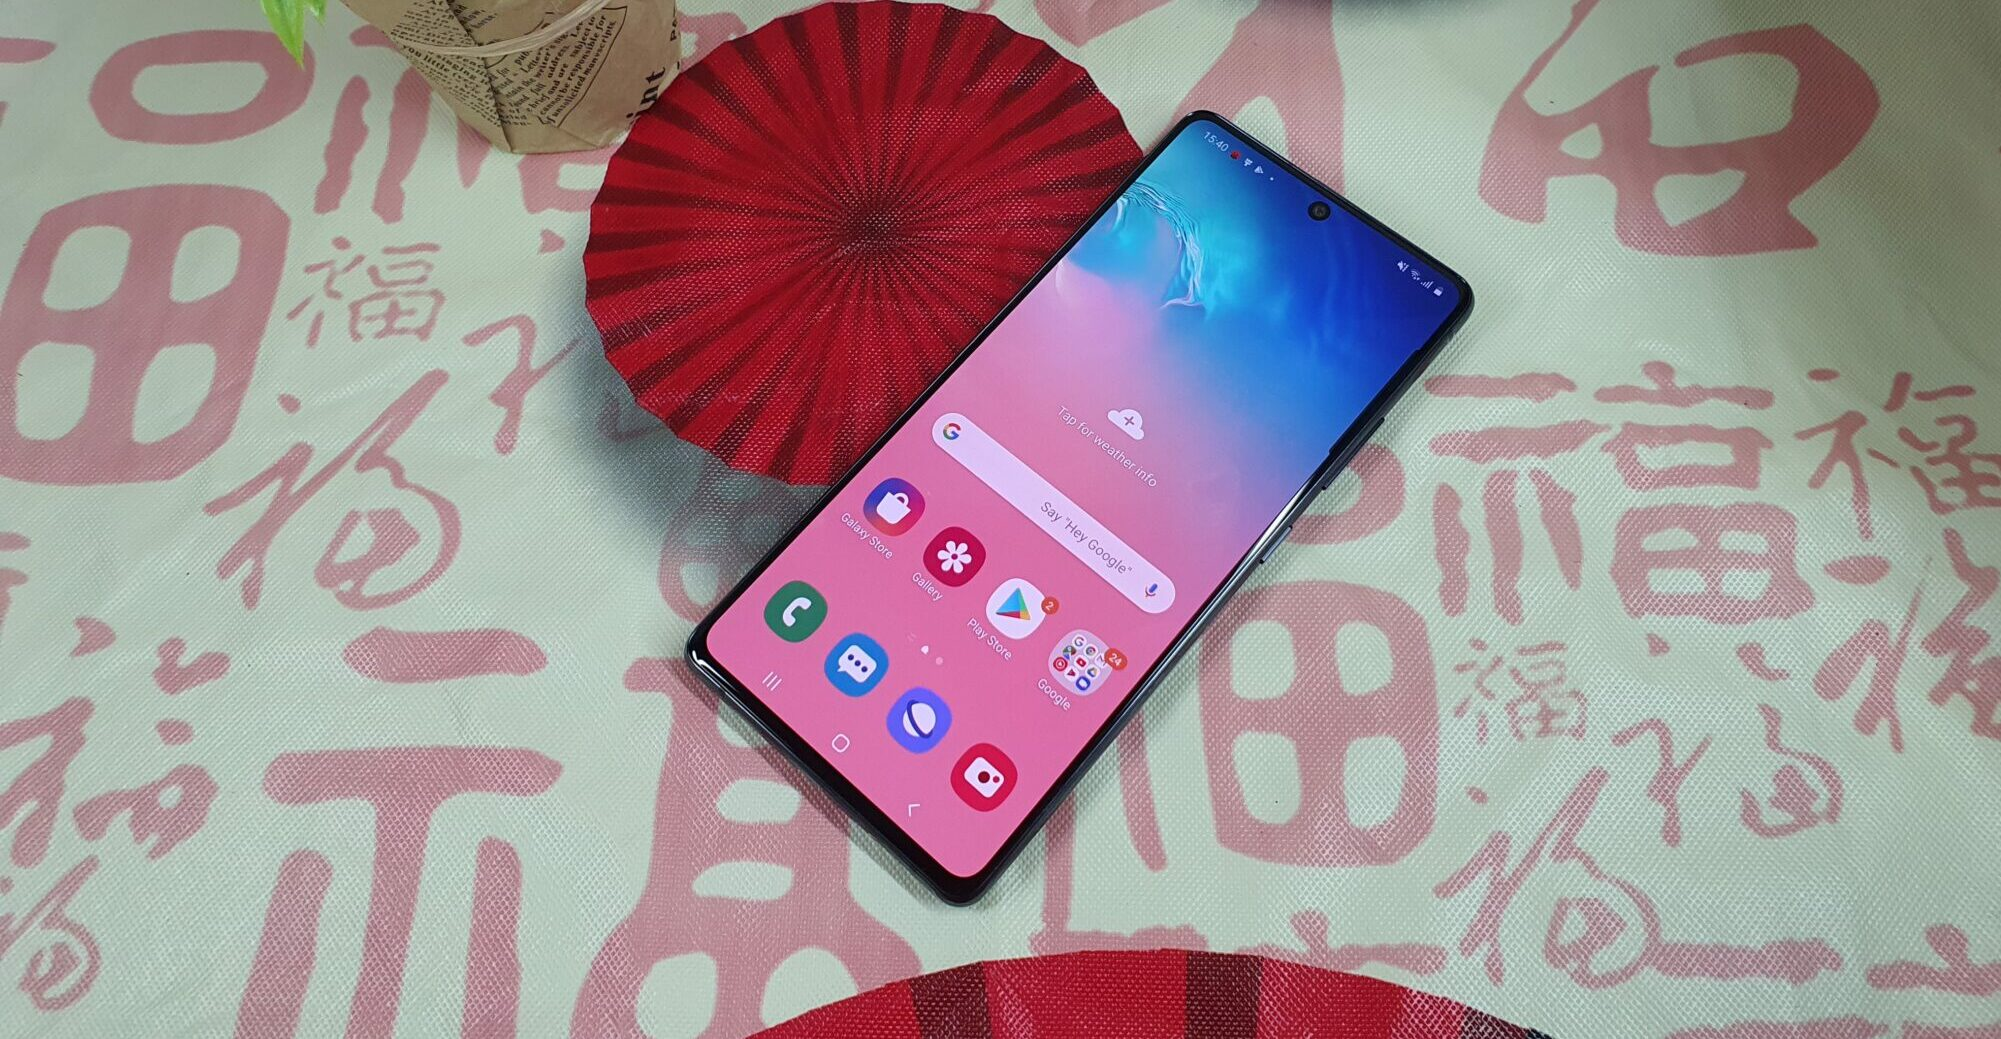 Samsung Galaxy S10 Lite Malaysia Preview – A more Affordable Galaxy S10 series experience?